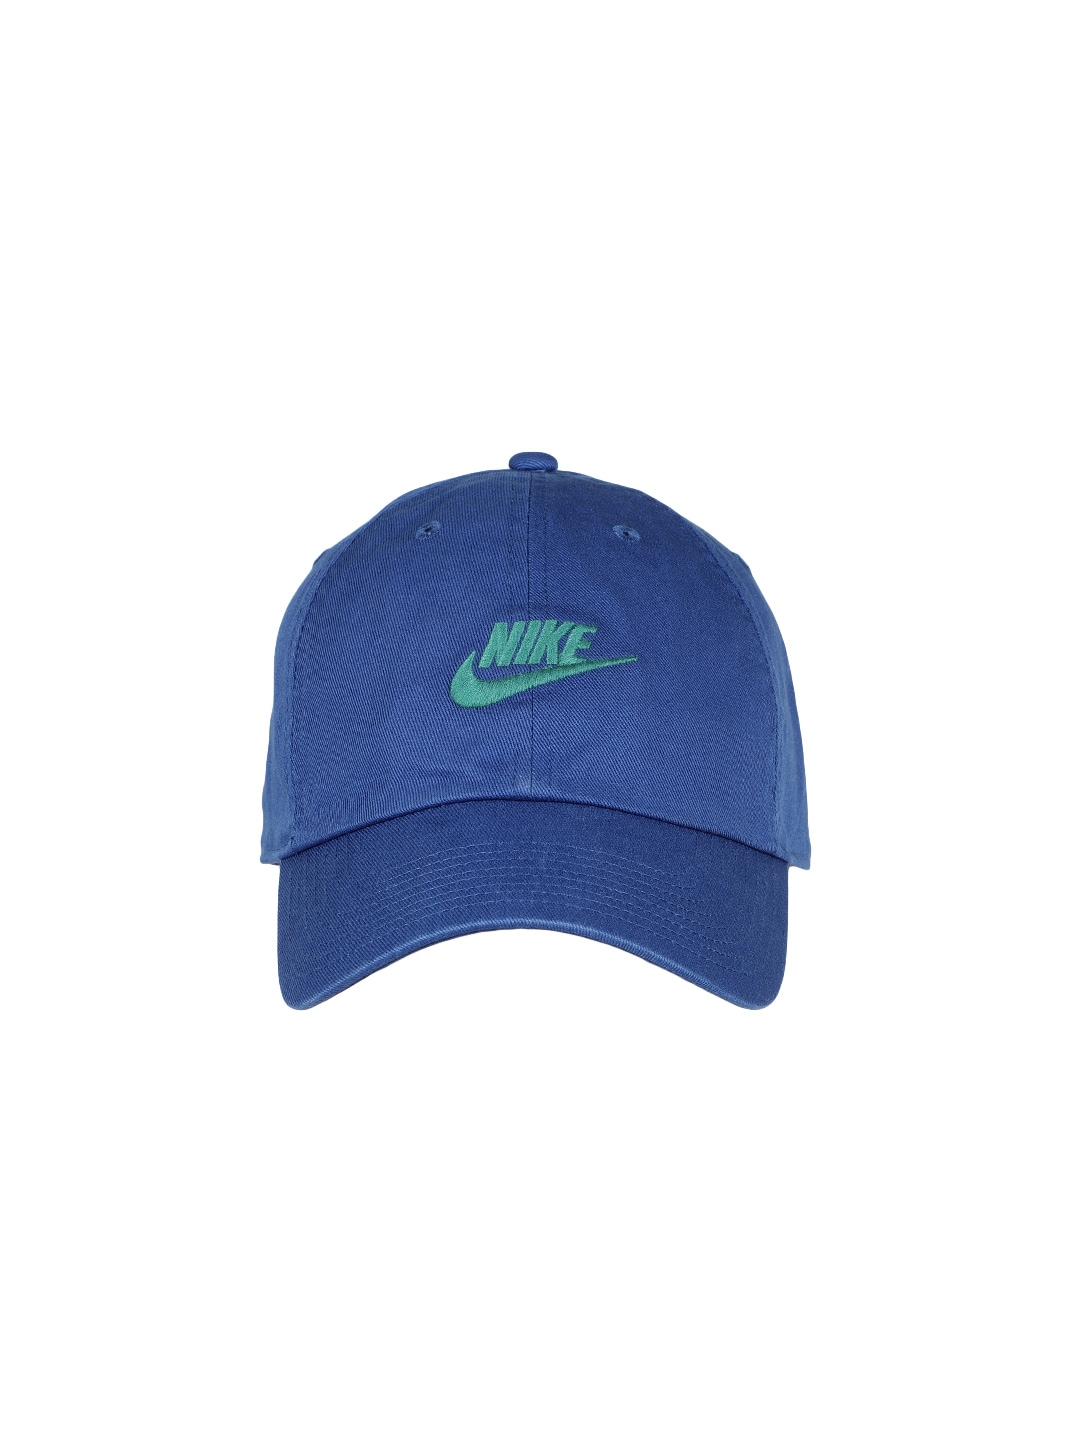 6b3953df67a Nike Fc Barcelona Sweatshirts Caps Waist Pouch - Buy Nike Fc Barcelona  Sweatshirts Caps Waist Pouch online in India